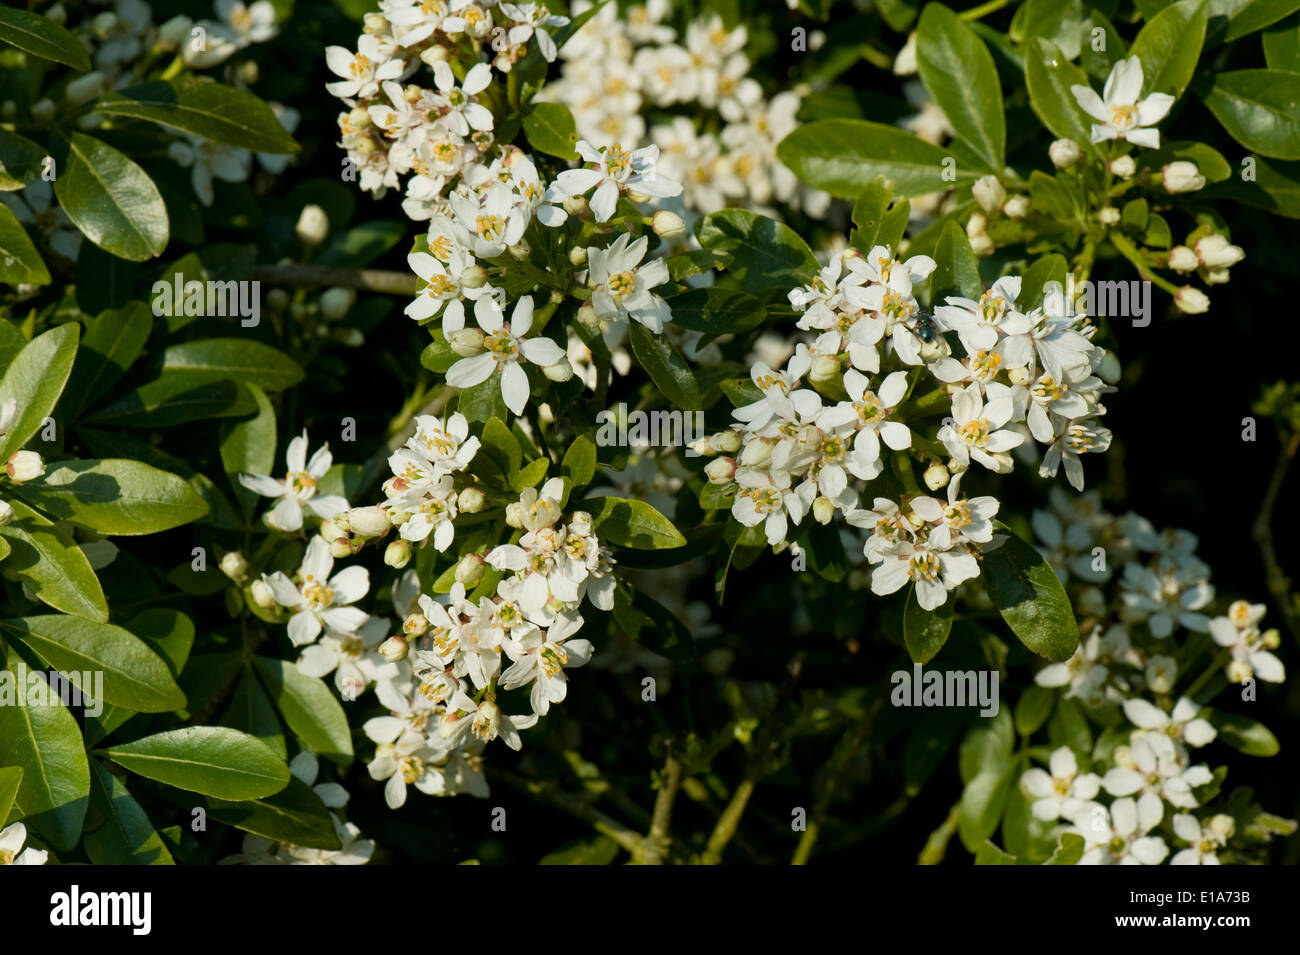 Scented white flowers stock photos scented white flowers stock mexican or mock orange choisya ternata flowering shrub with white highly scented flowers mightylinksfo